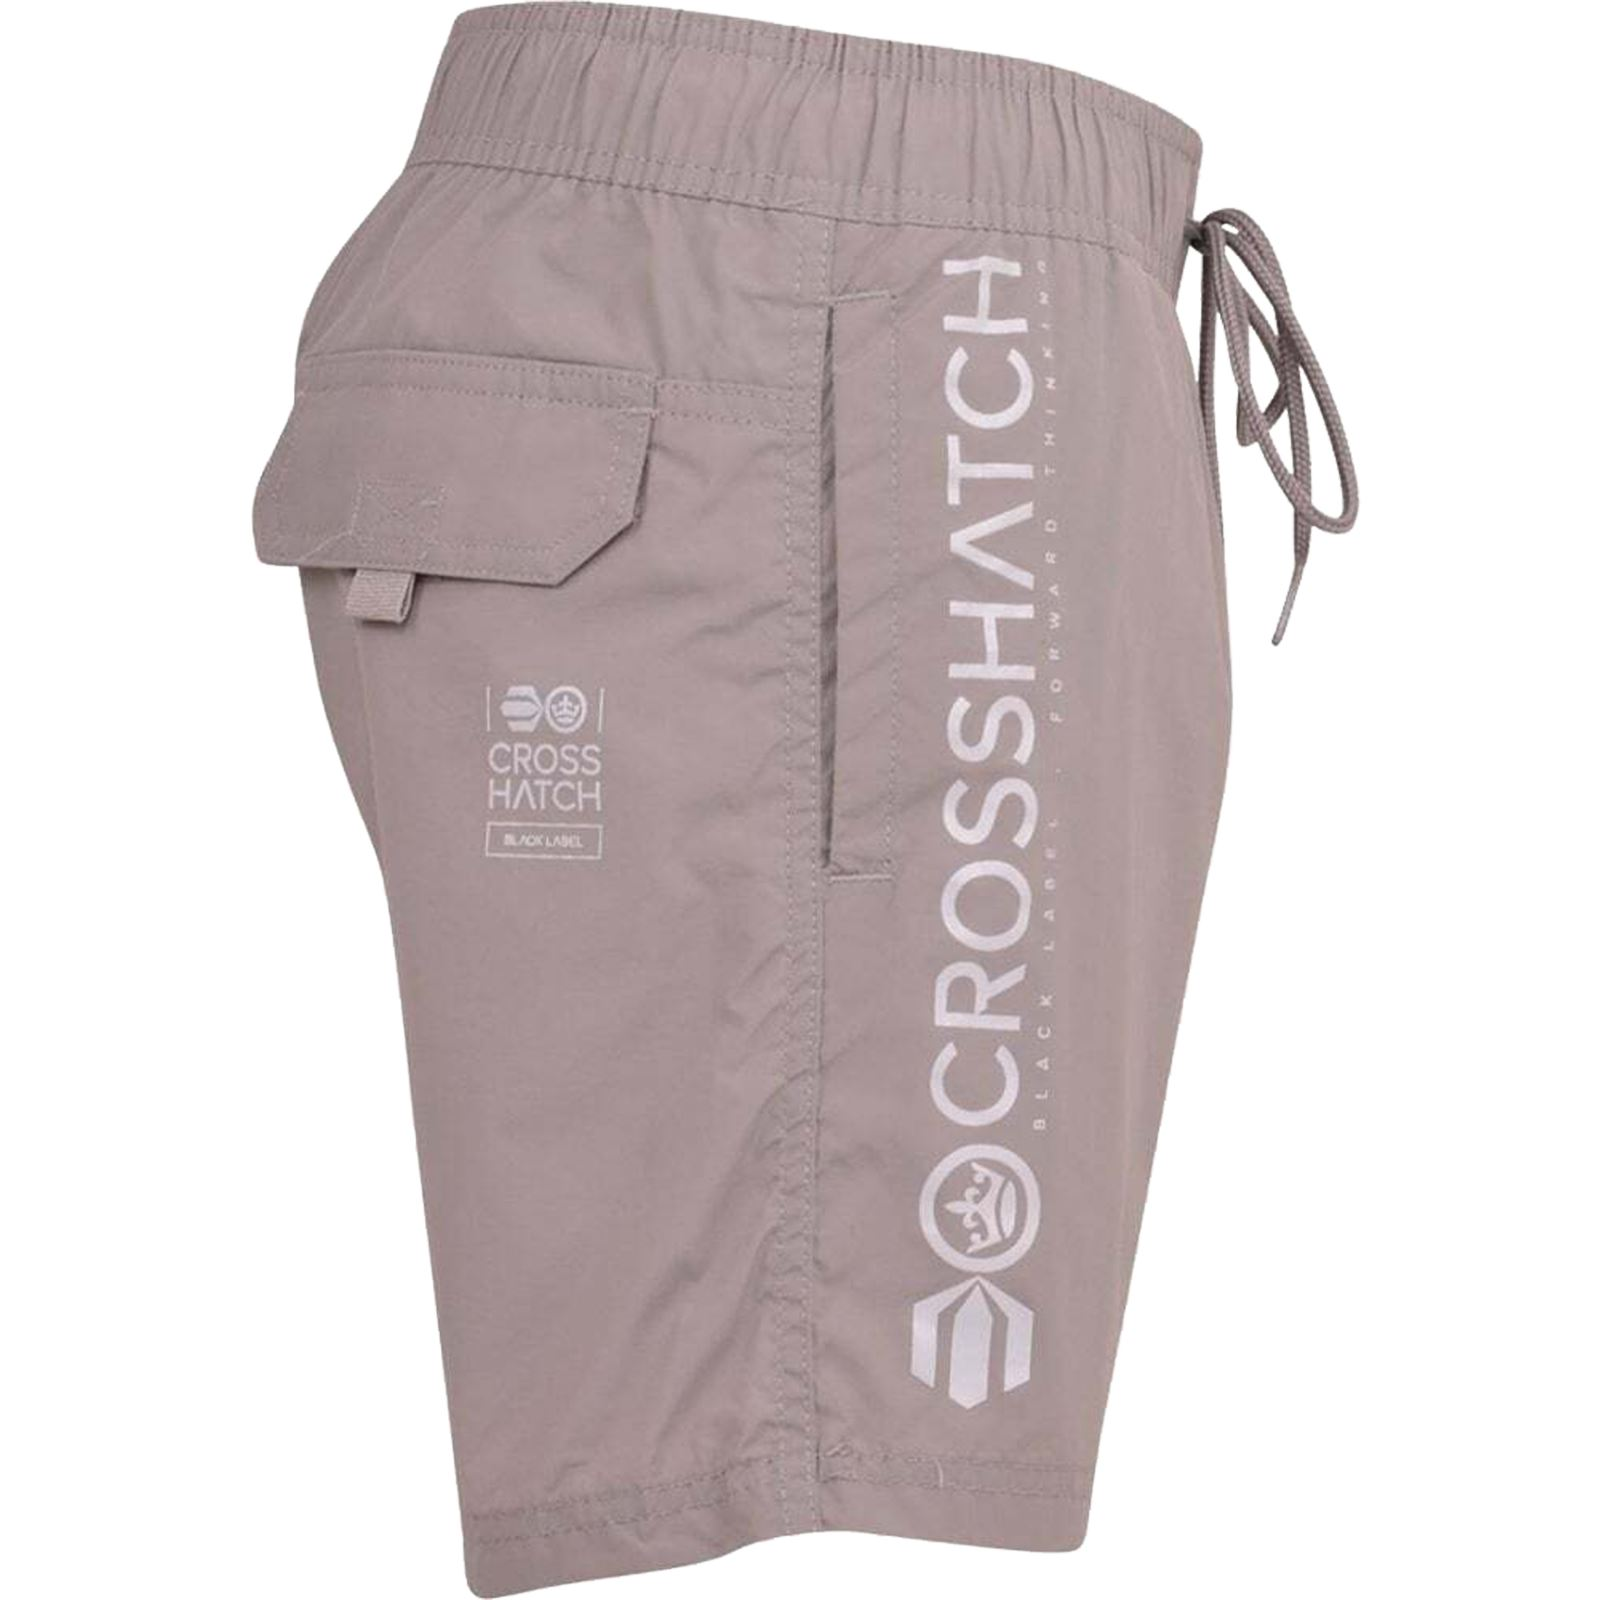 Mens-Crosshatch-Shorts-Drawcord-Mesh-Lined-Designer-Beach-Casual-Swimming-Trunks thumbnail 11